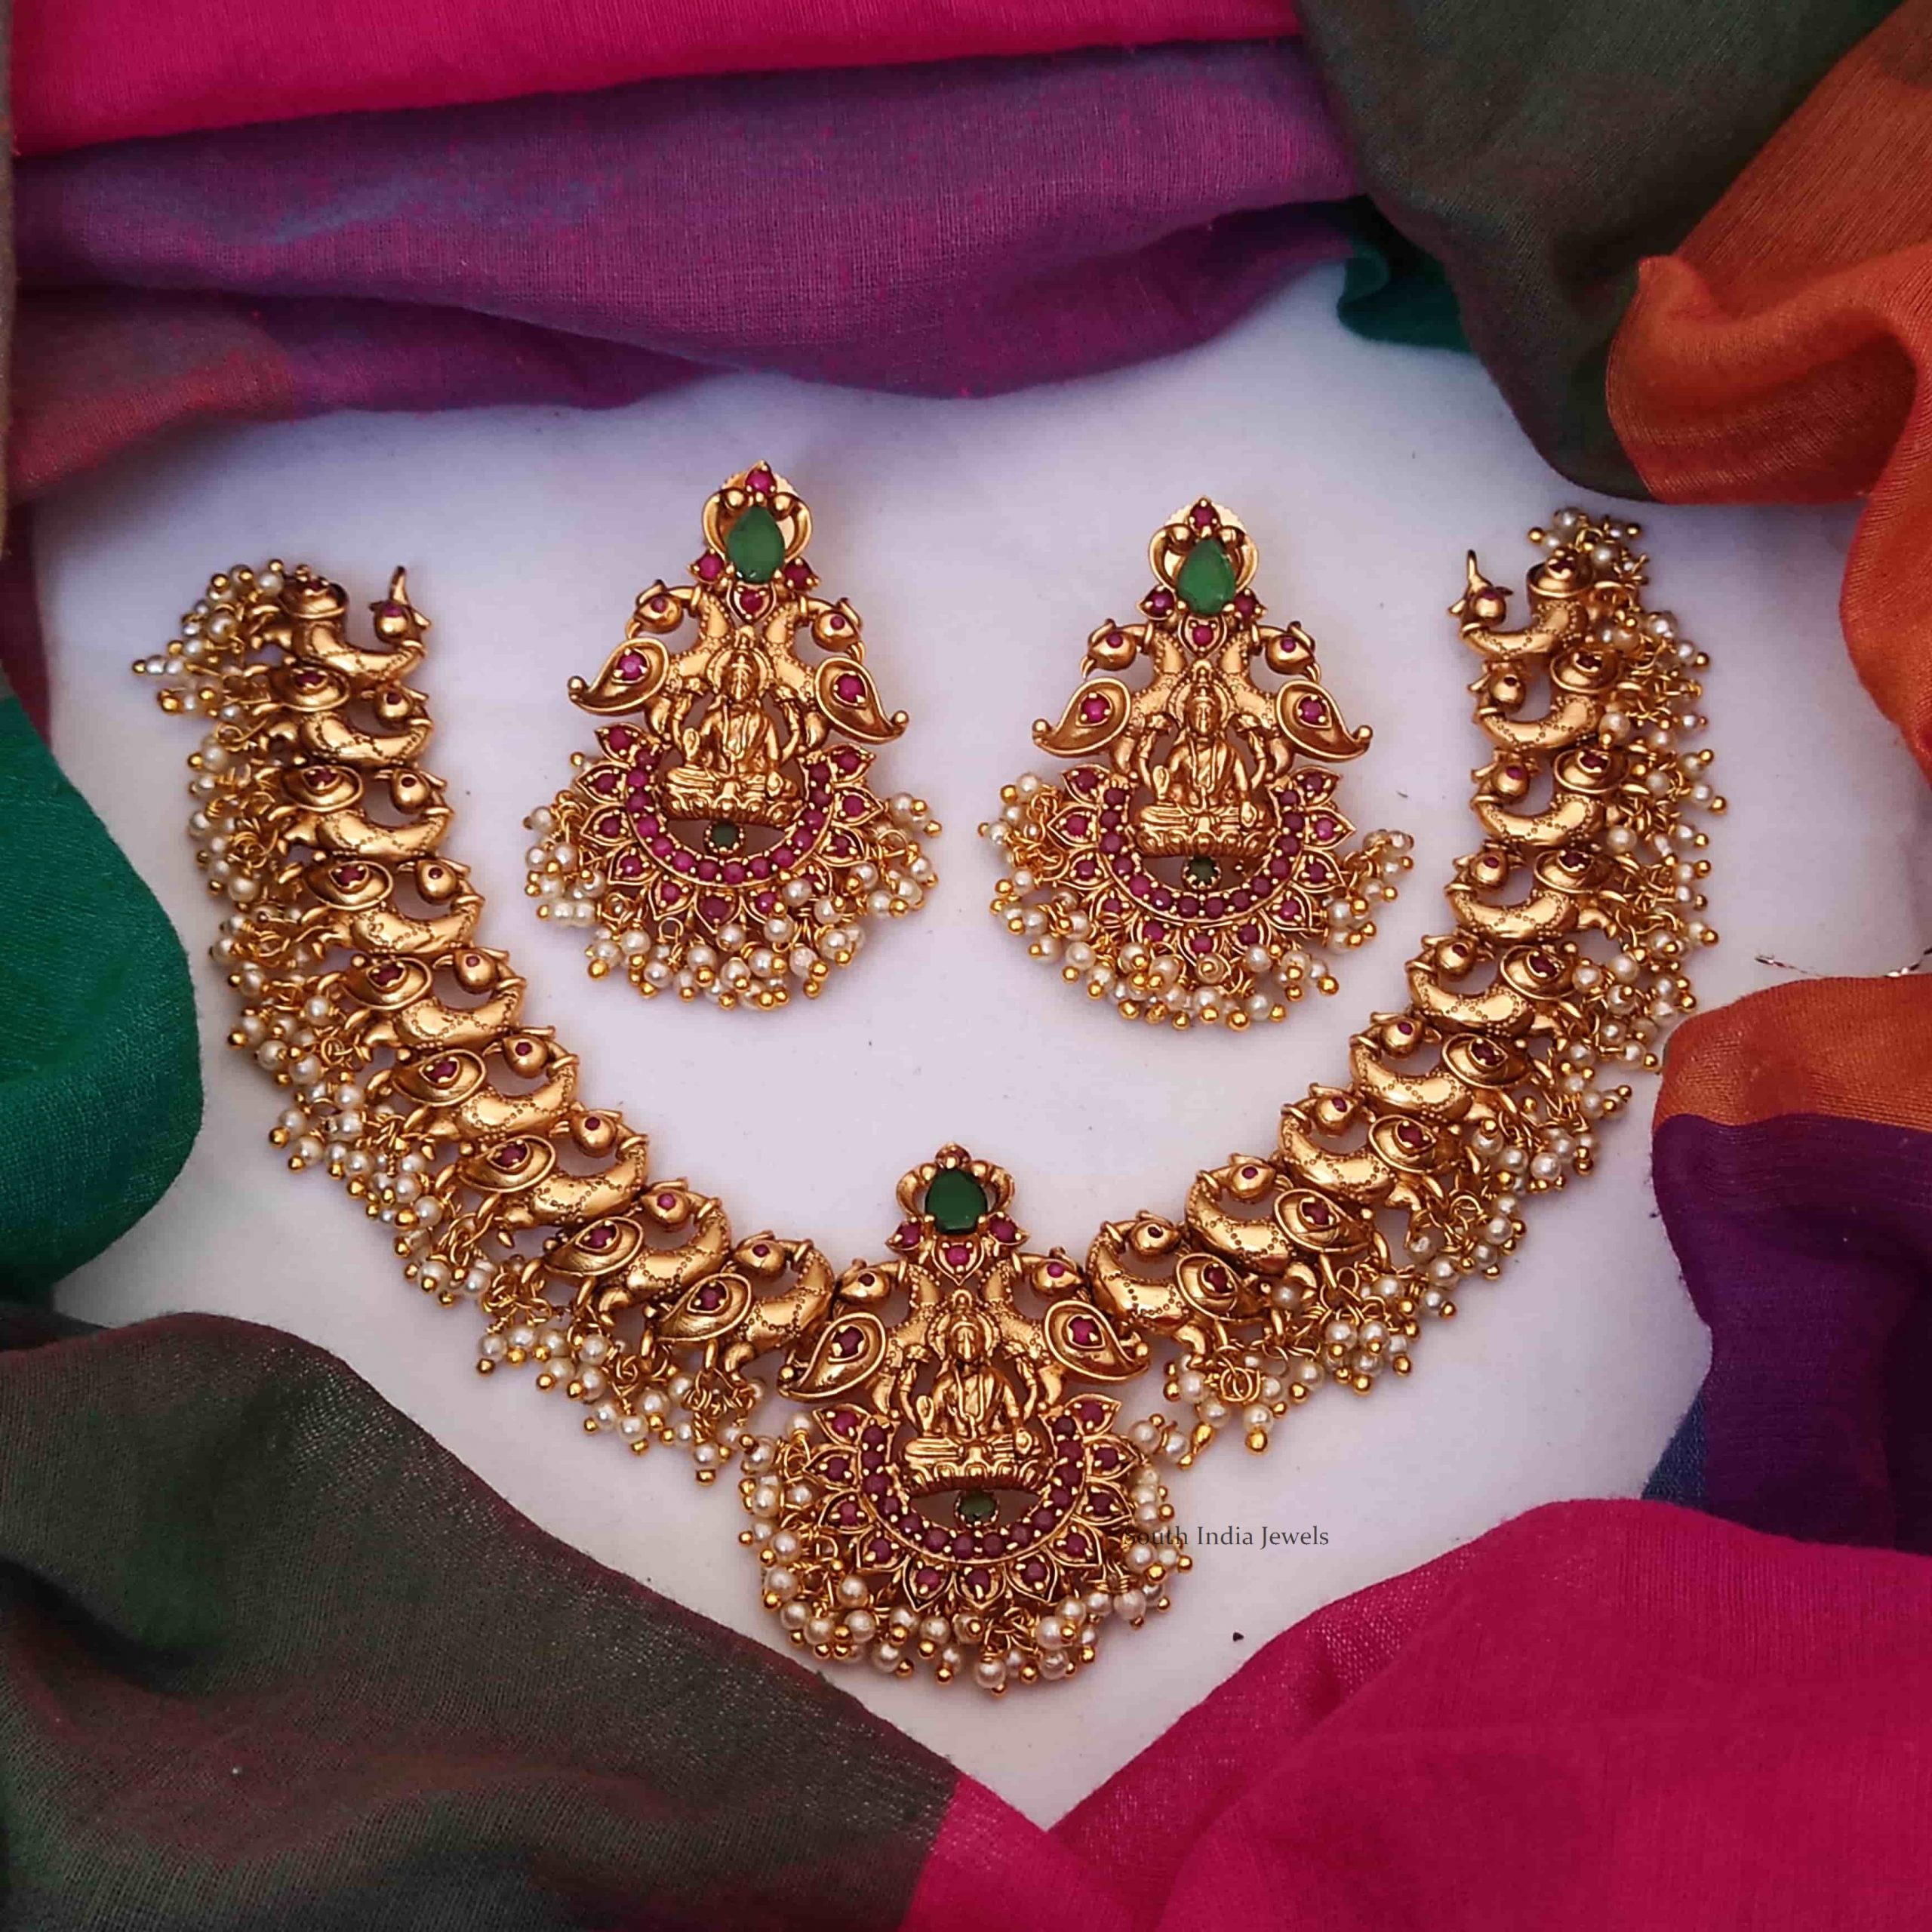 Grand-Lakshmi-and-Peacock-Design-Necklace-01-scaled